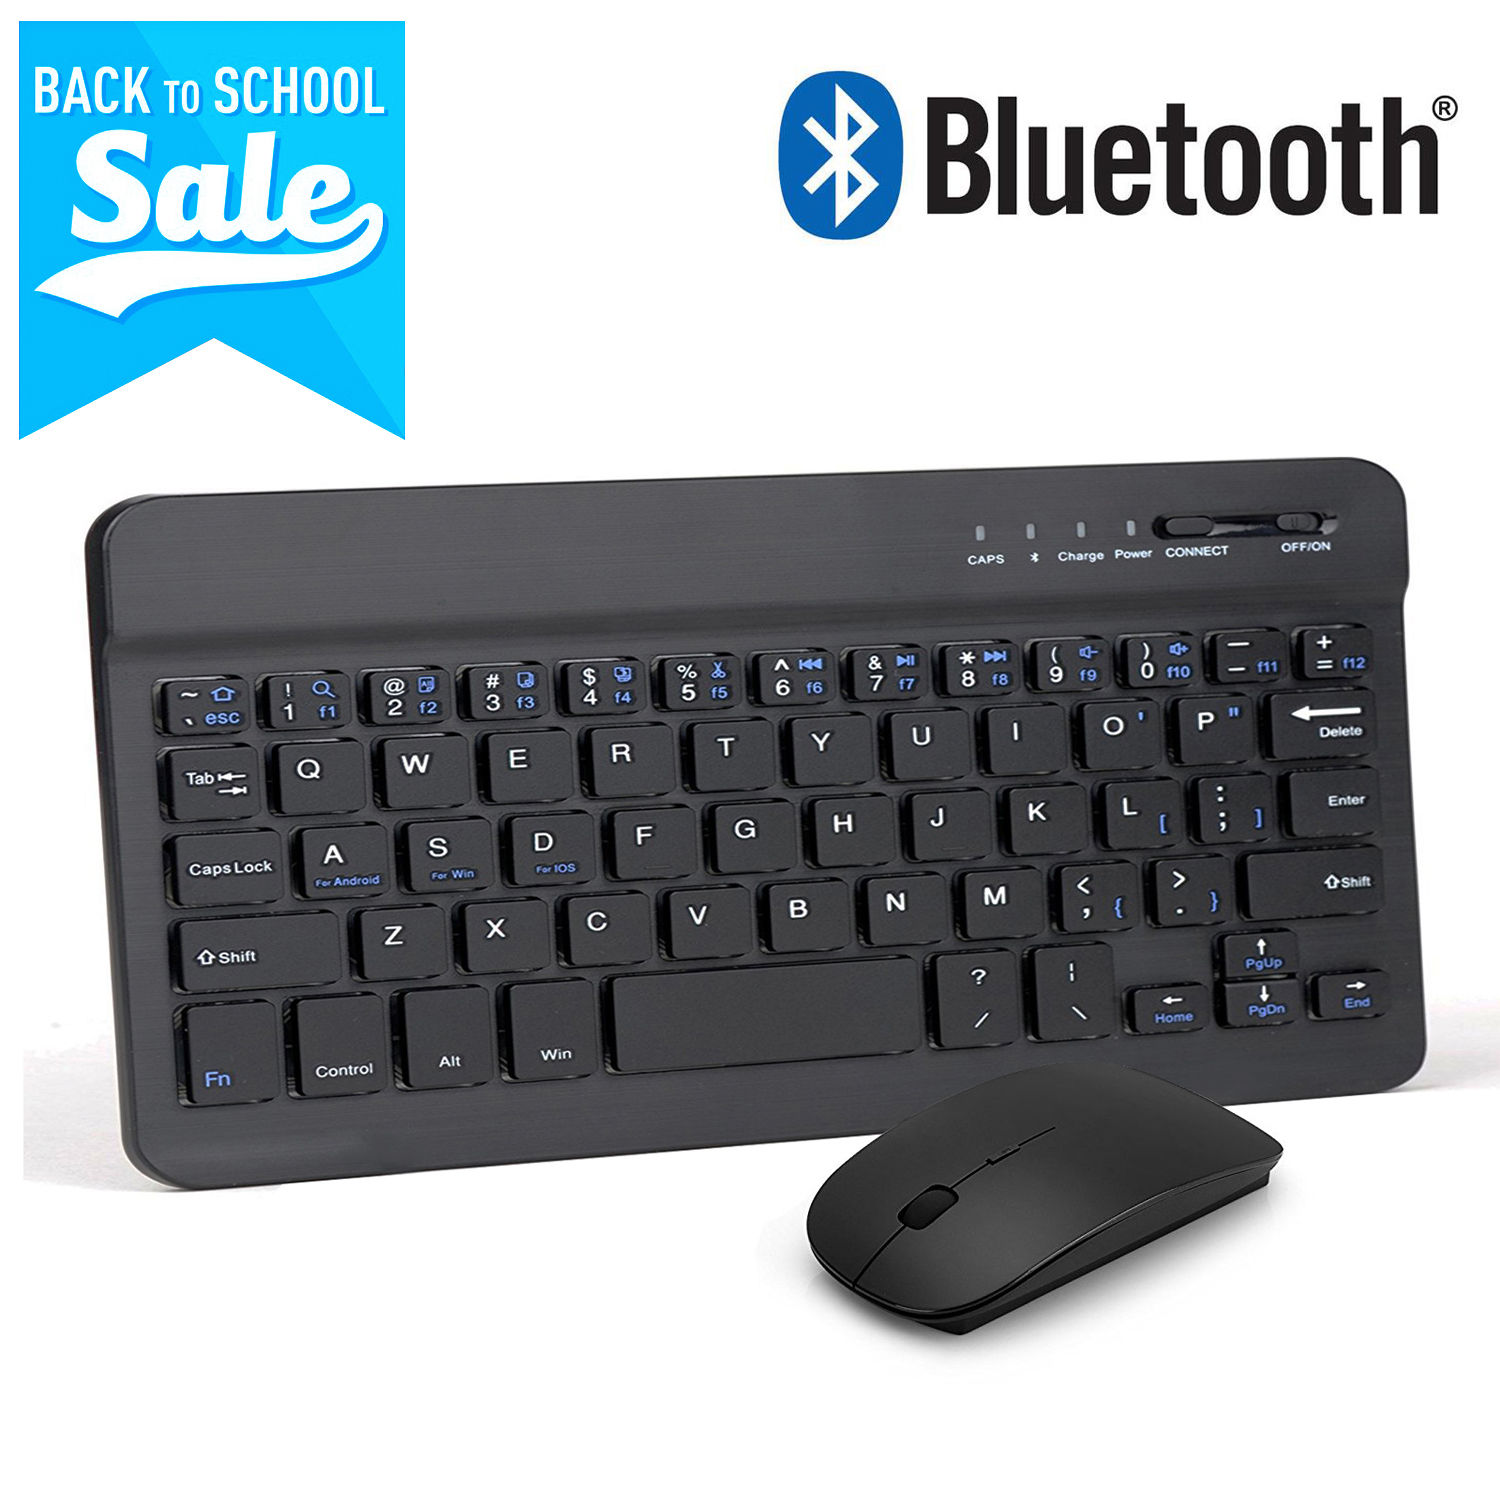 EEEKit 2-in-1 Bundle Kit for 7 and 8 inch Tabelet, Wireless Bluetooth Keyboard & 2.4G Wireless Mouse